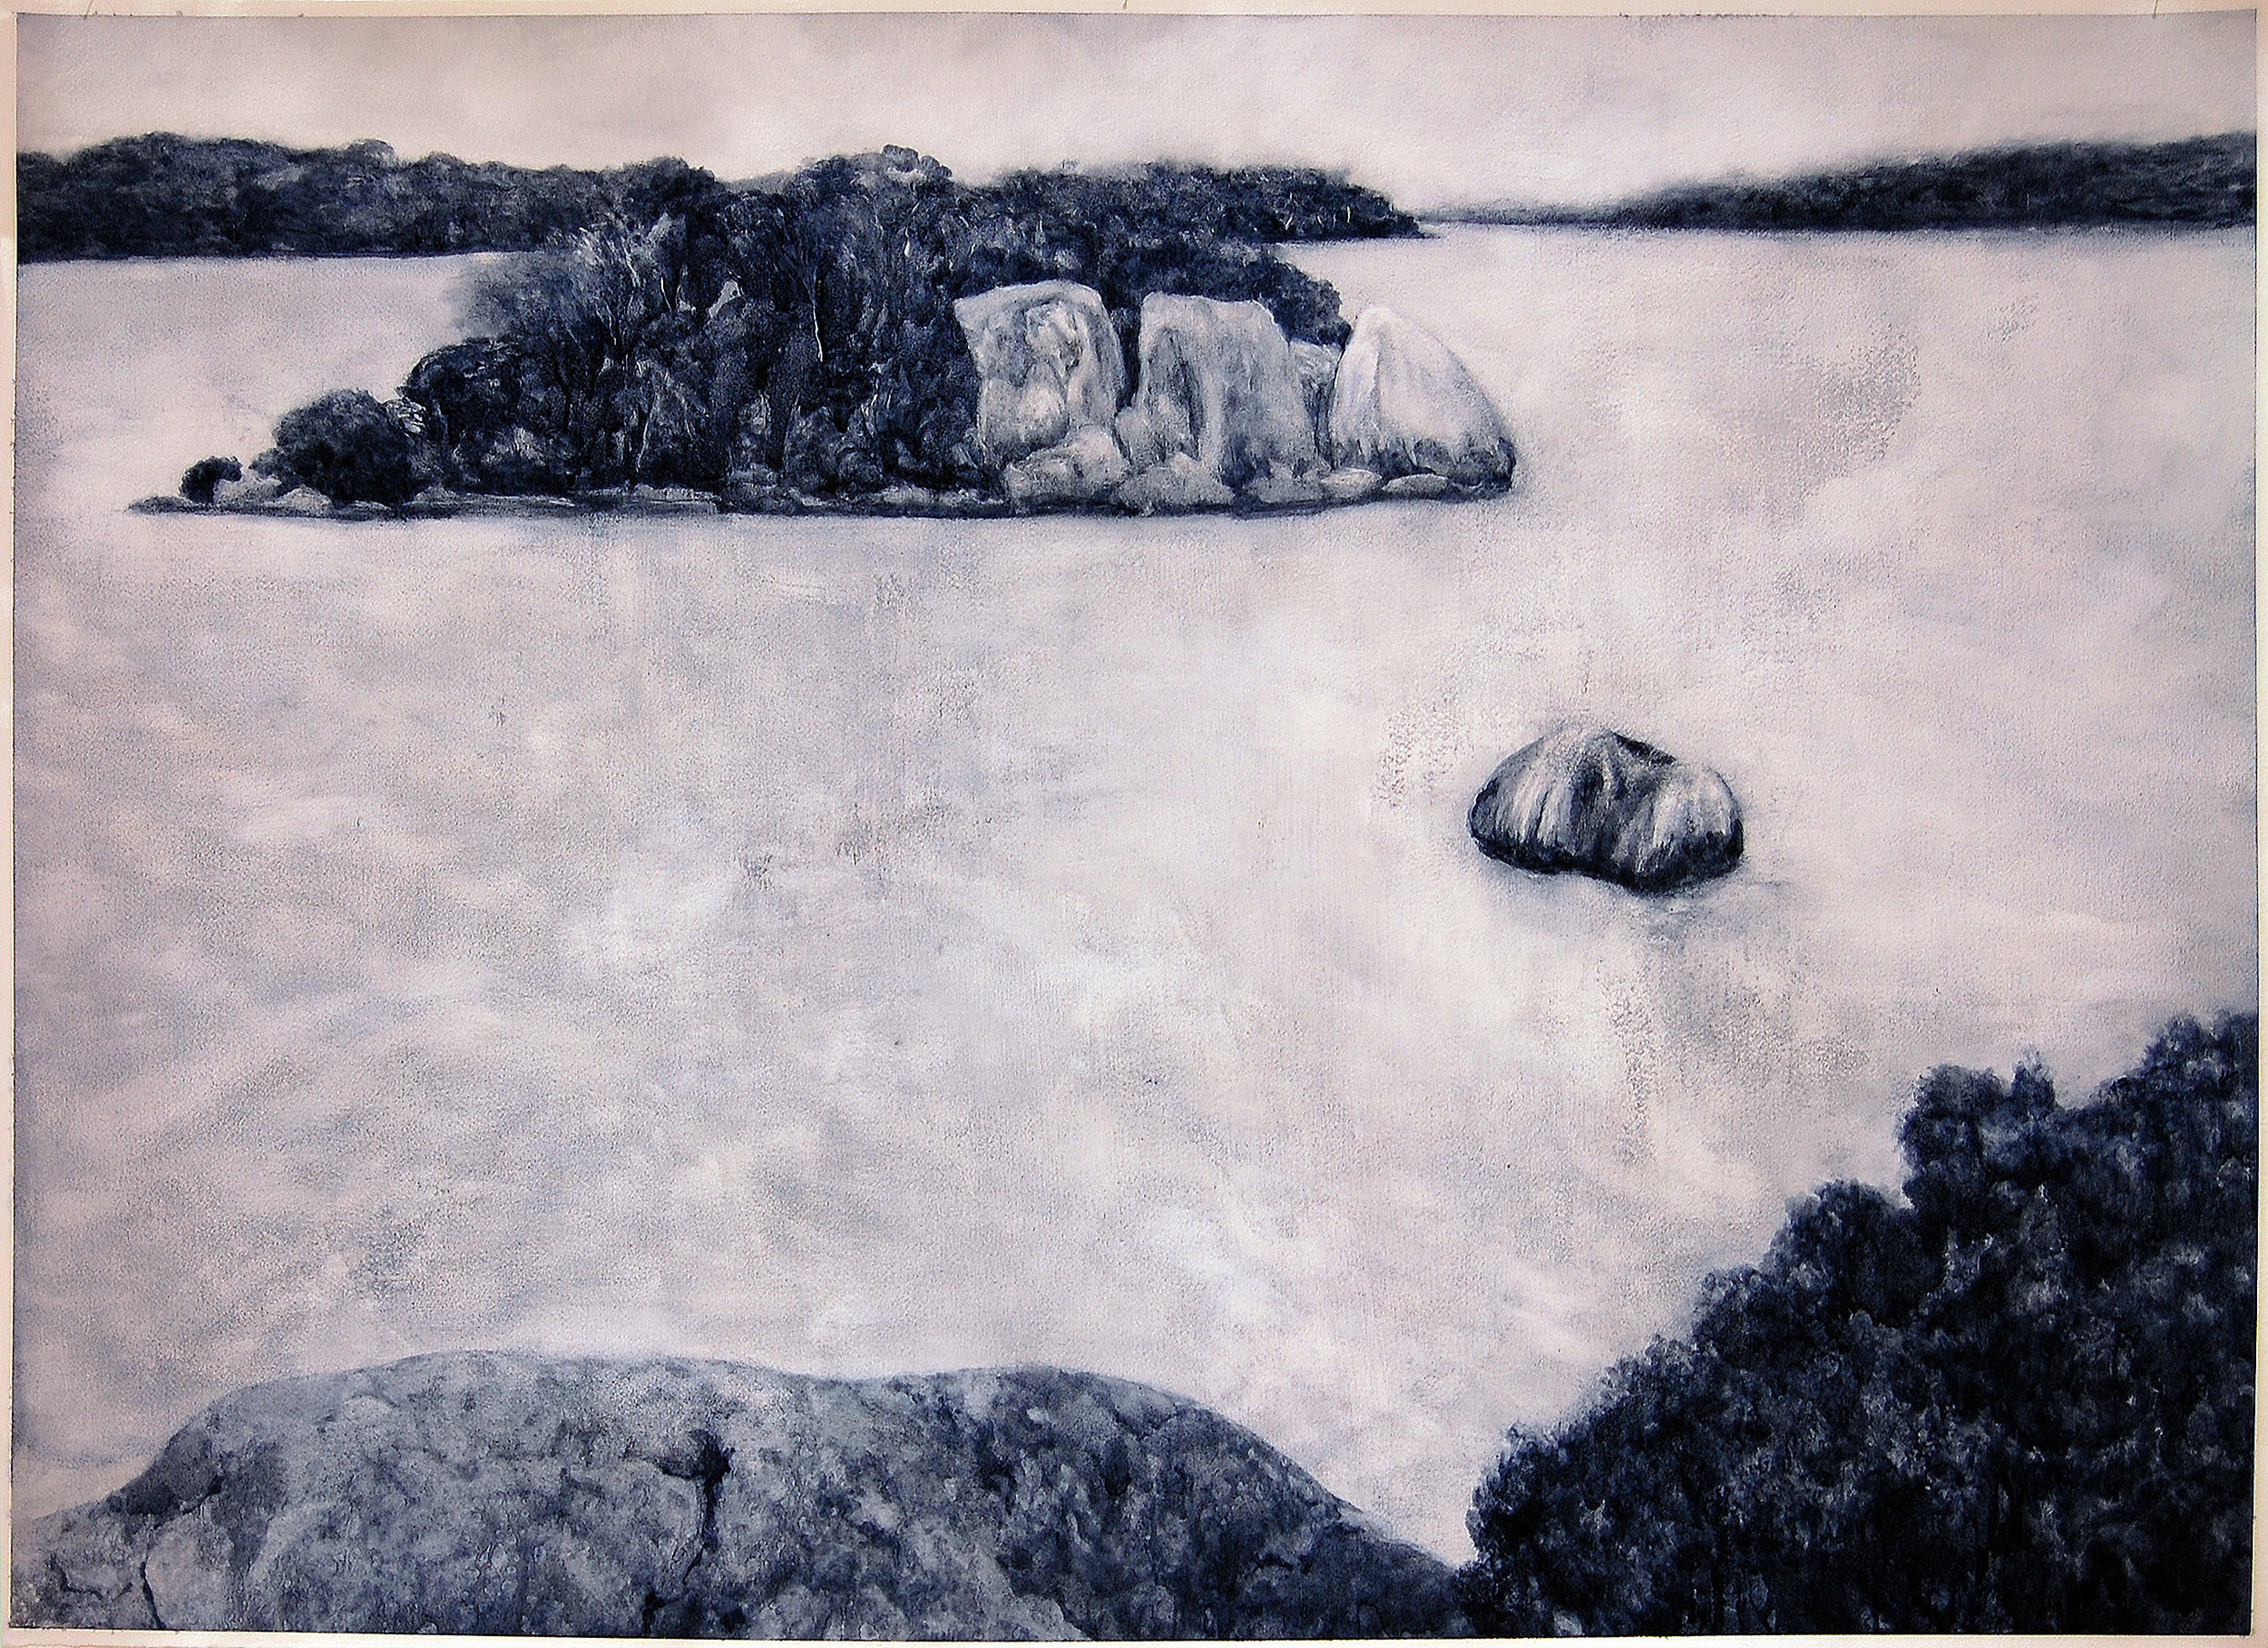 Island (Inlet), 2018, Oil on paper, 85 x 105cm